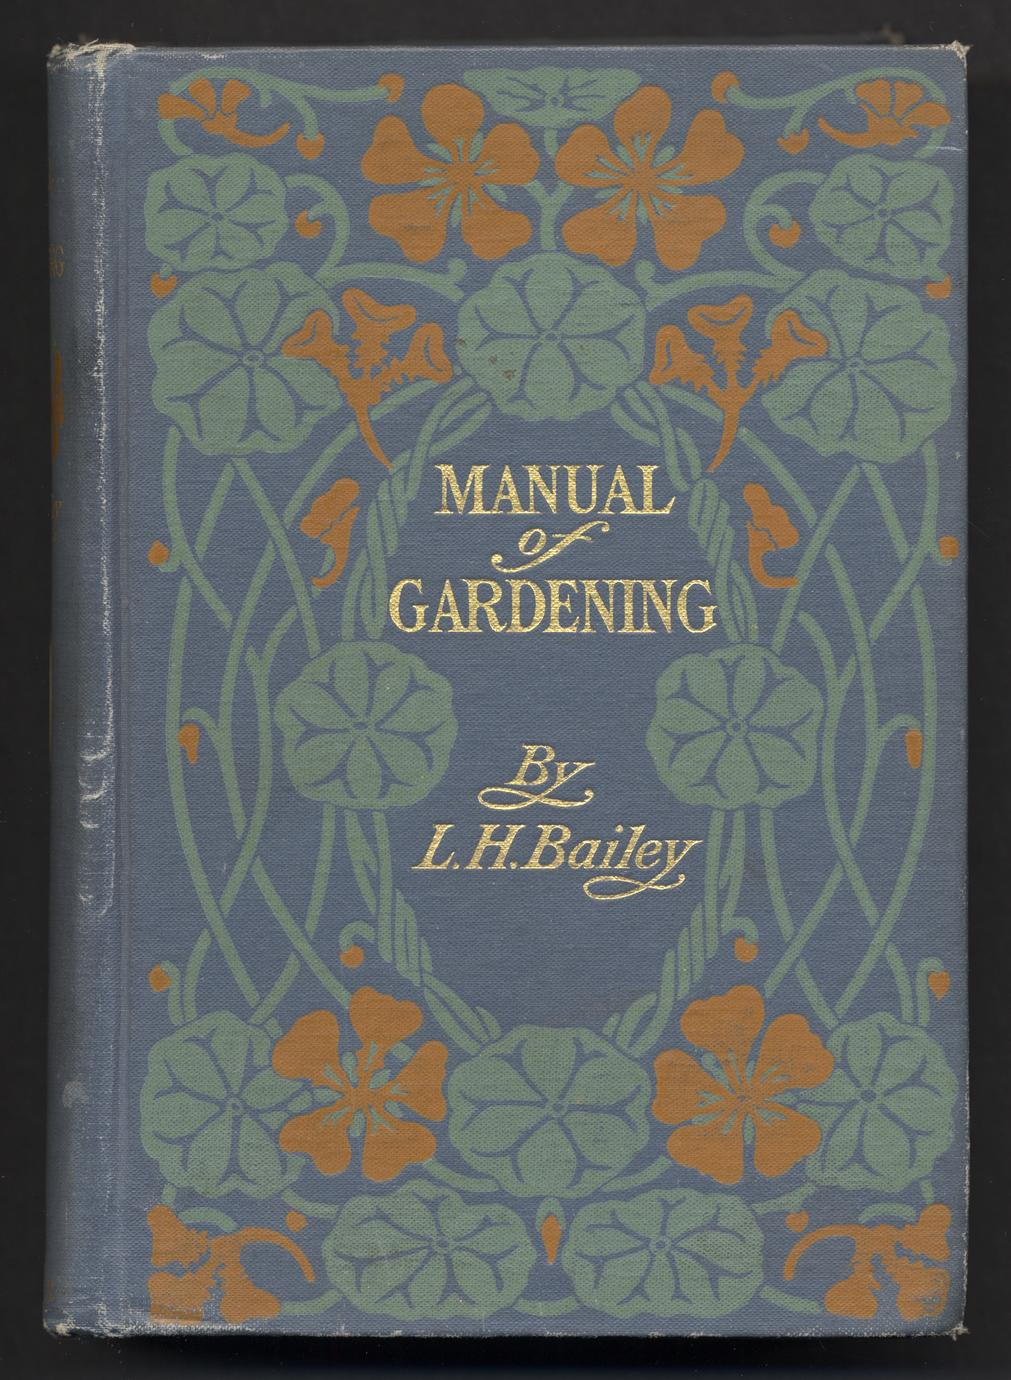 Manual of gardening : a practical guide to the making of home grounds and the growing of flowers, fruits, and vegetables for home use (1 of 2)